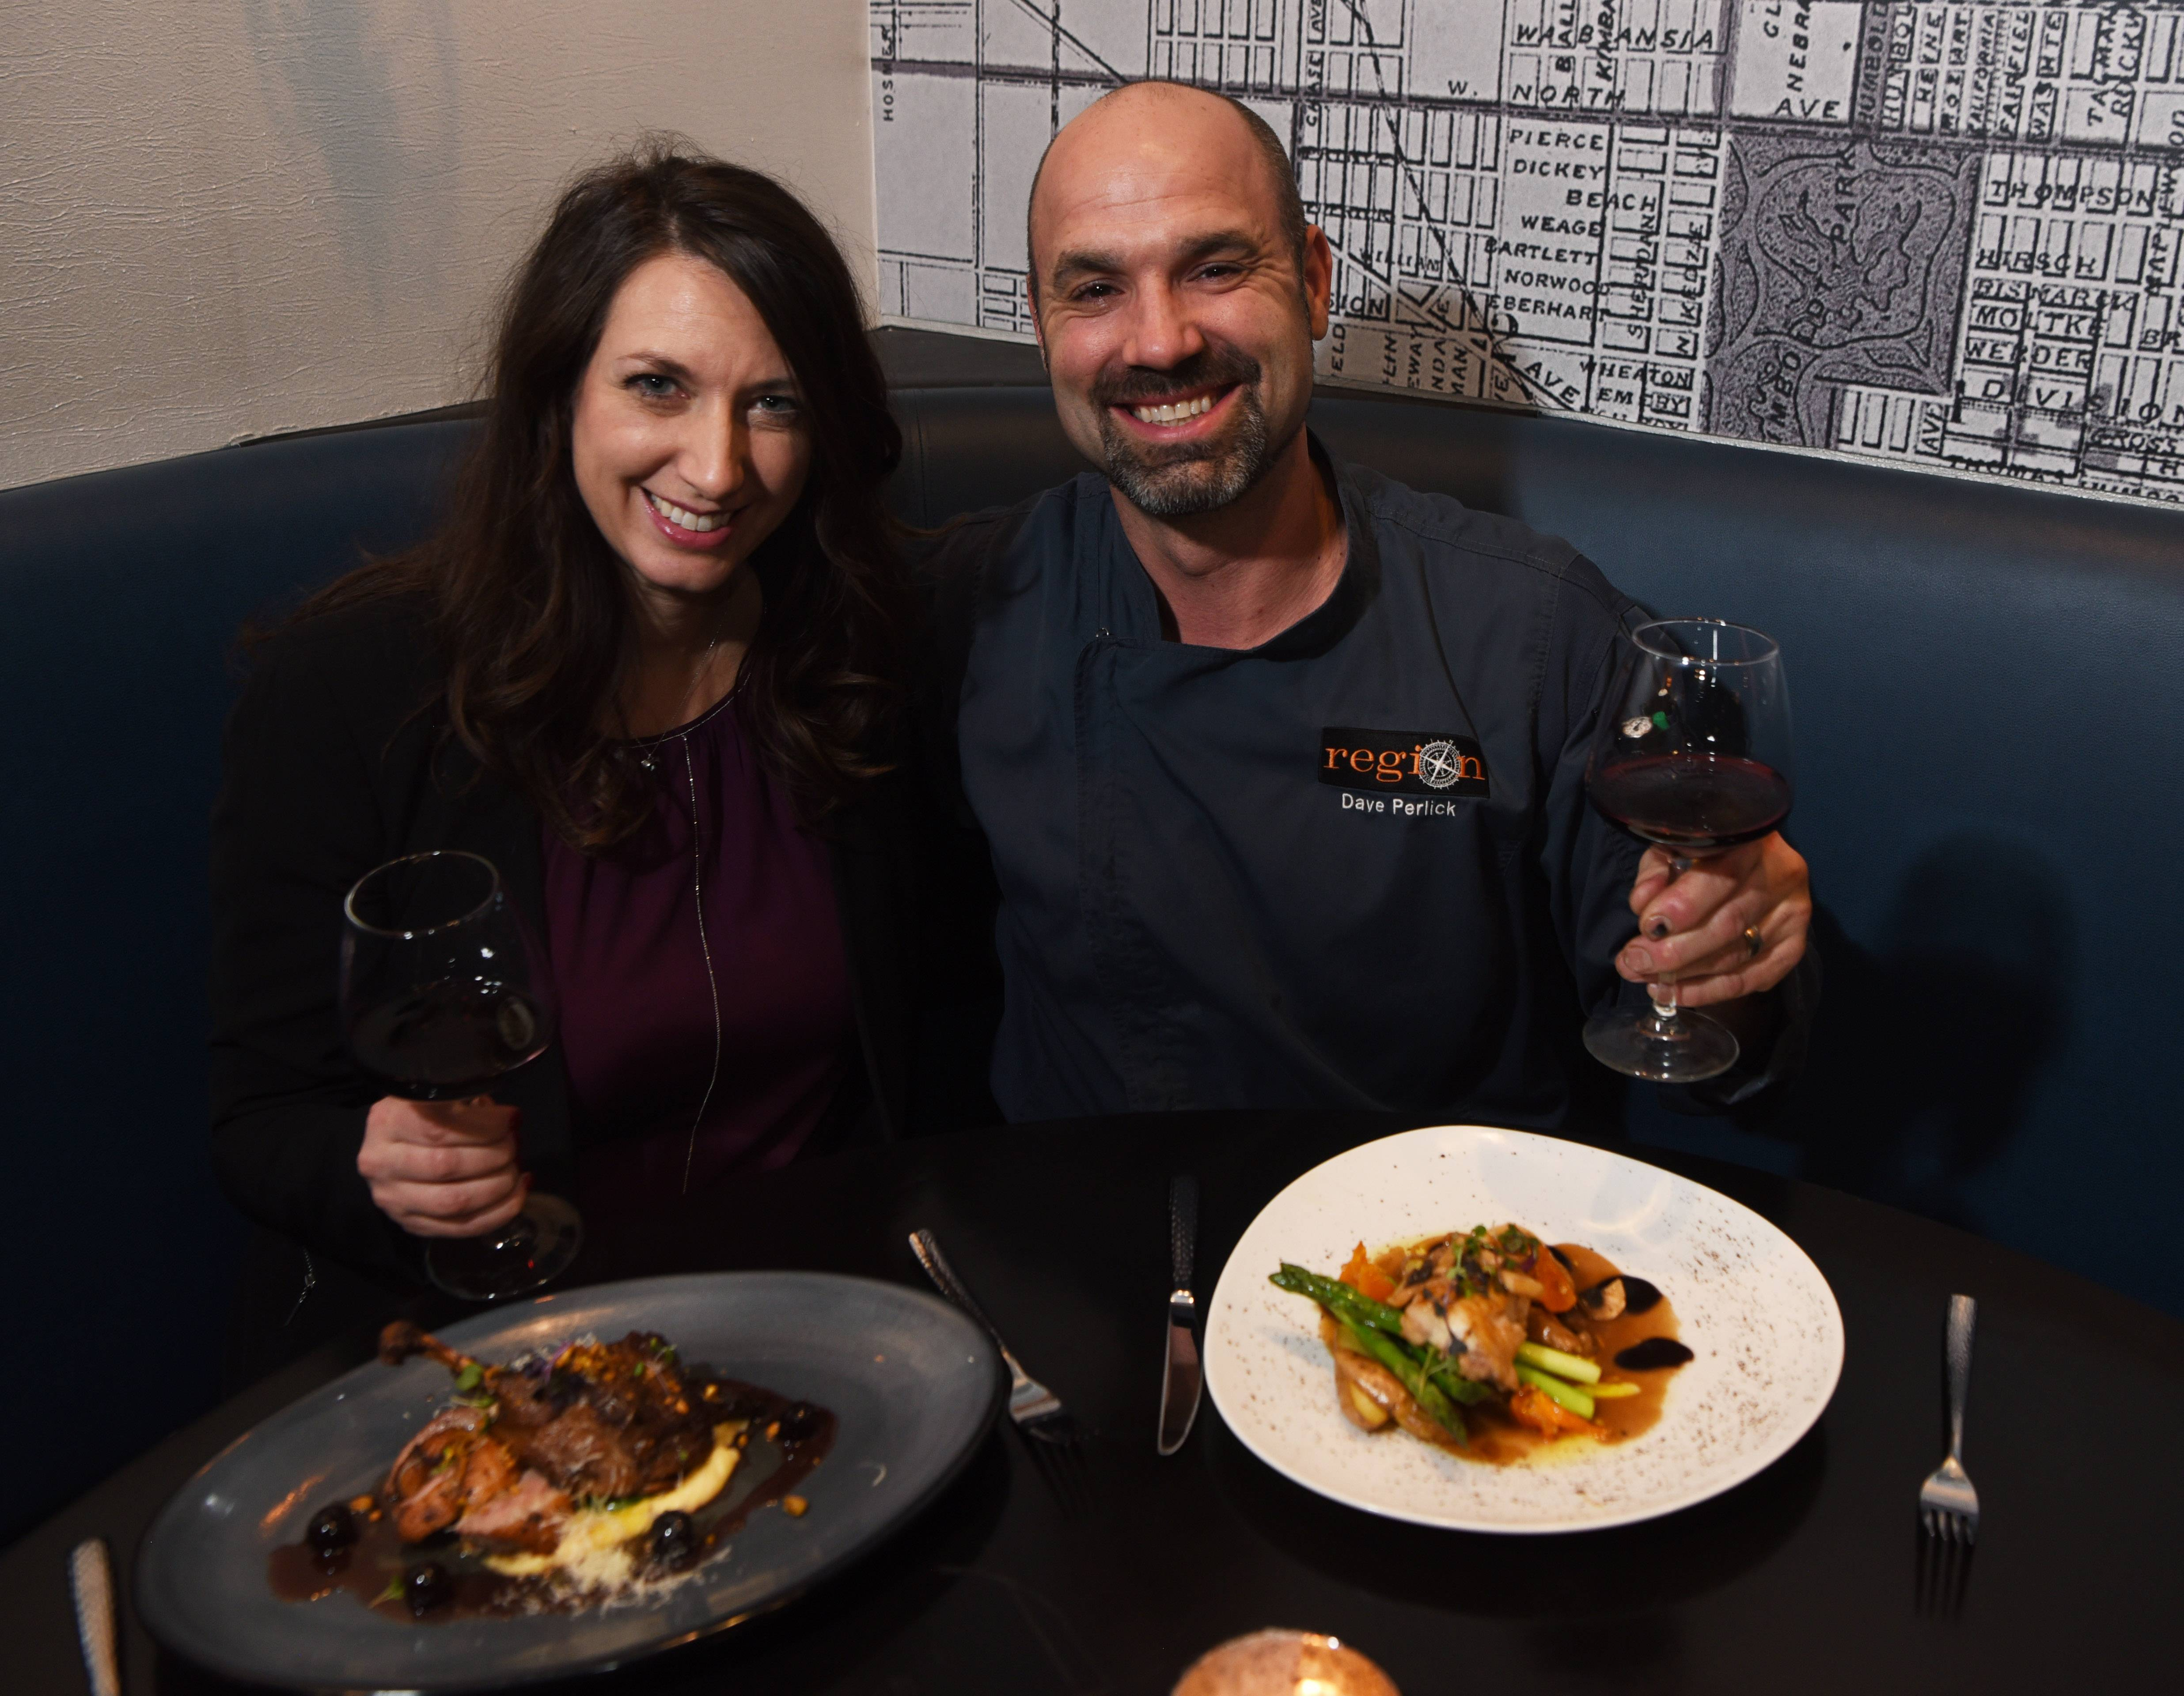 Jillian and Dave Perlick recently opened the upscale Region Kitchen and Bar in Barrington.